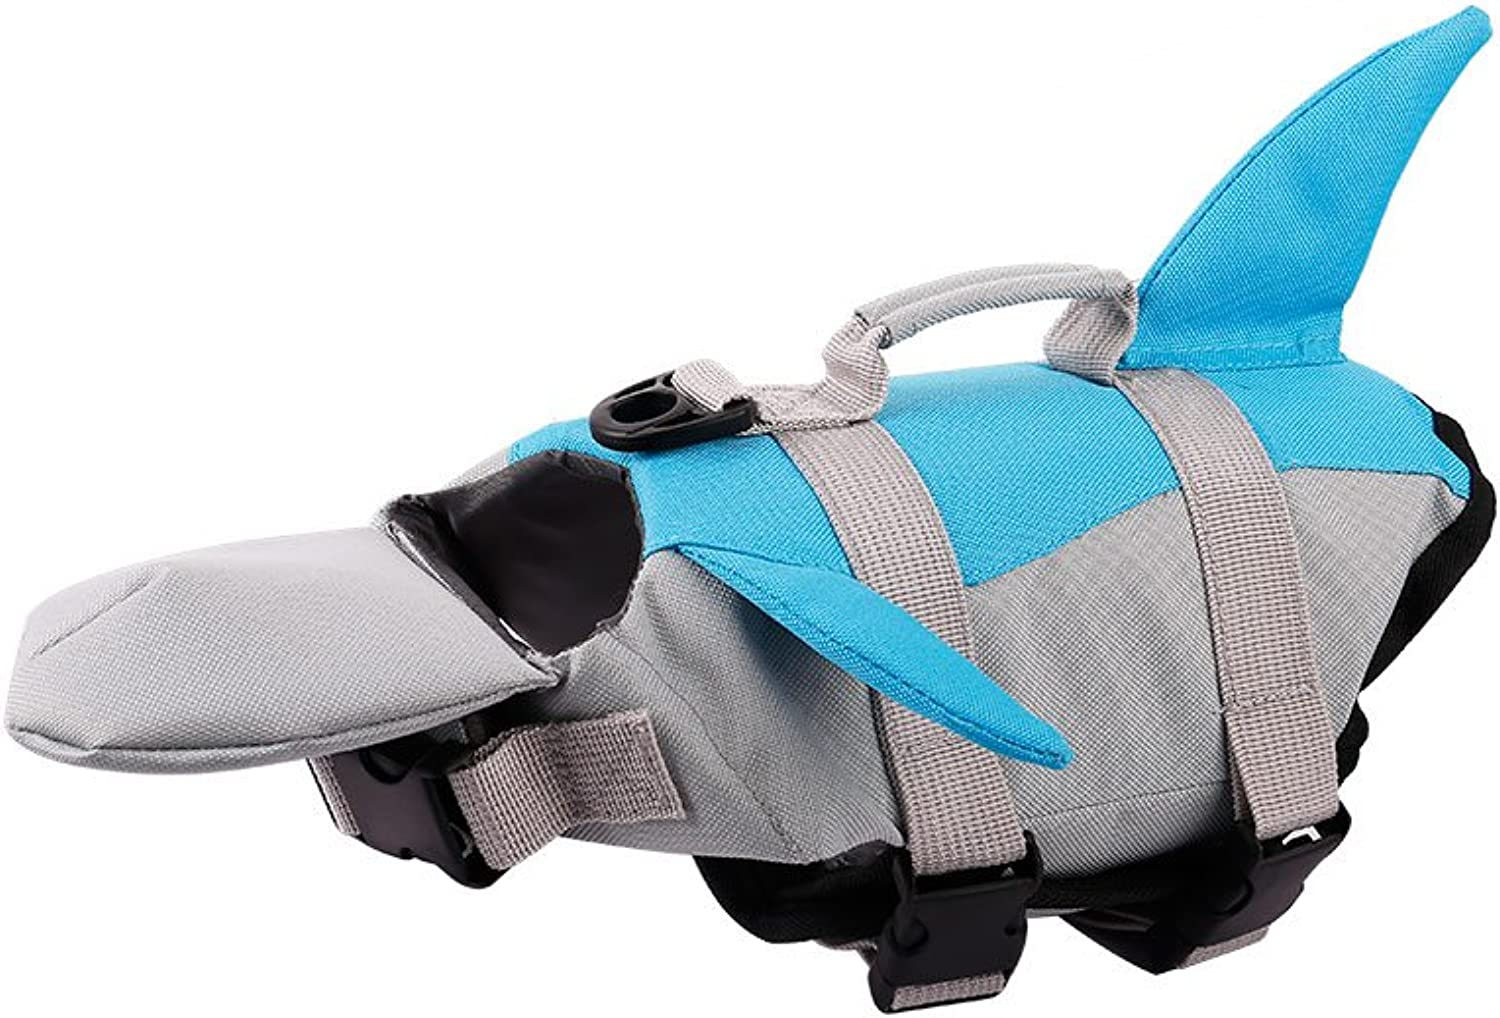 PETCEE Hunting Dog Life Jacket Quick Release EasyFit Adjustable Life Jackets for Small Dogs (bluee, S)